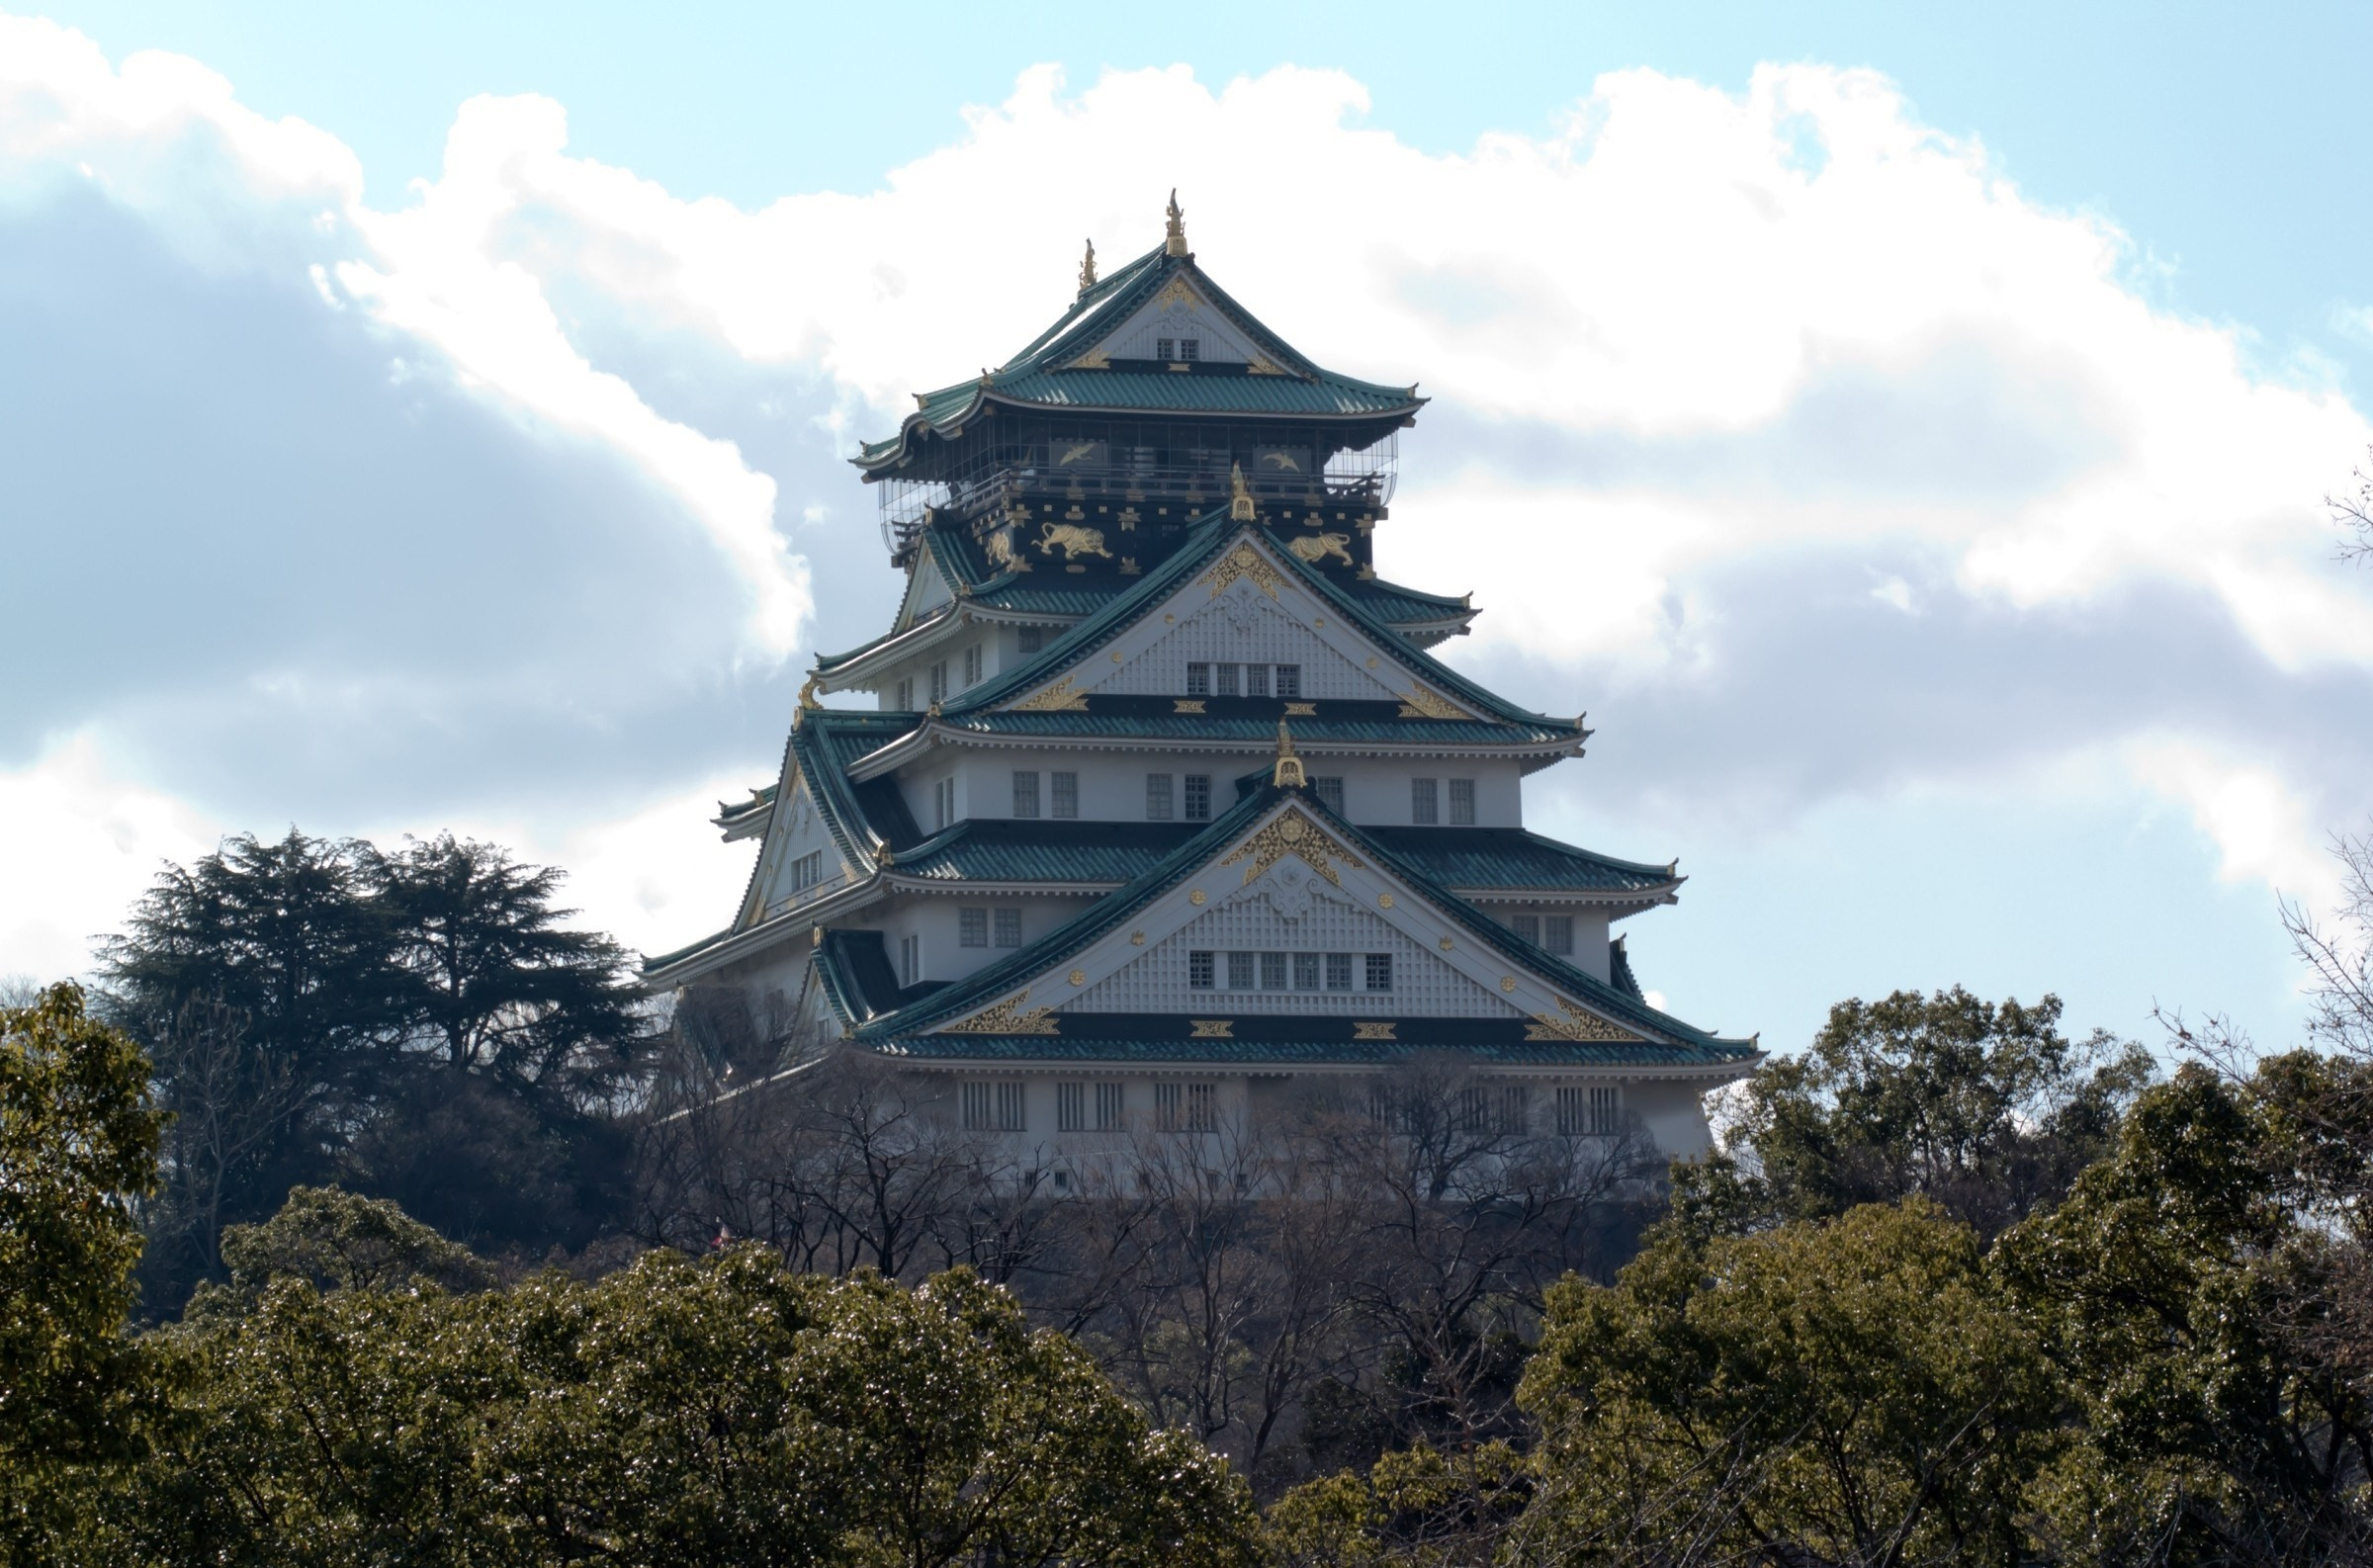 2400x1586 osaka castle images background by Merritt MacDonald (2017-03-03)